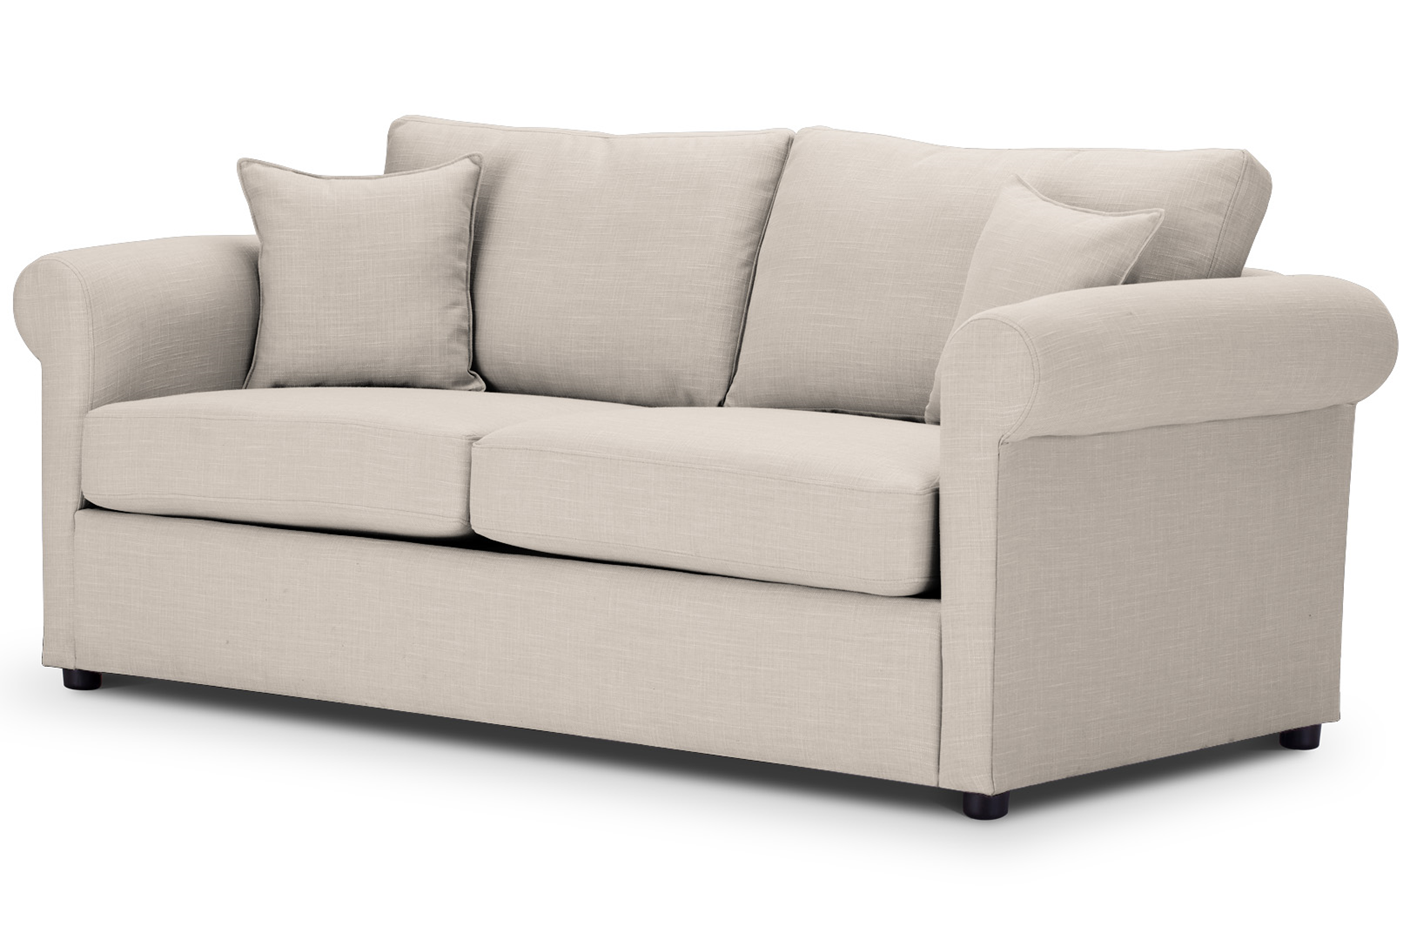 London Sofa at Just British Sofas 3 Seater in Emp500 Cream 02